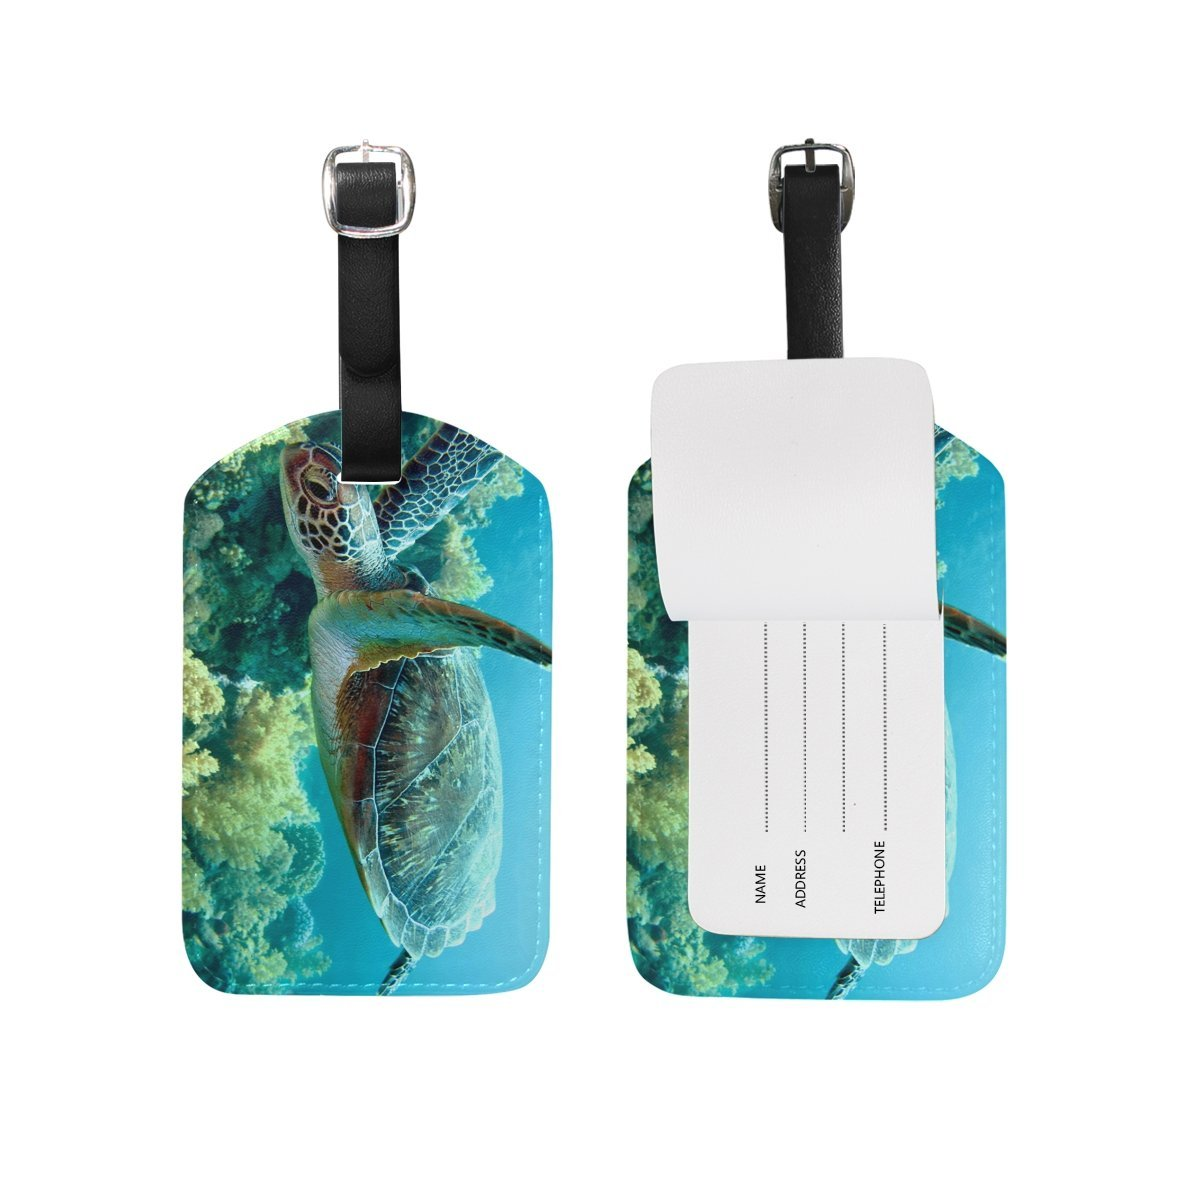 Sea Turtle Travel Leather Luggage Baggage Suitcases Tags Label Set of 2